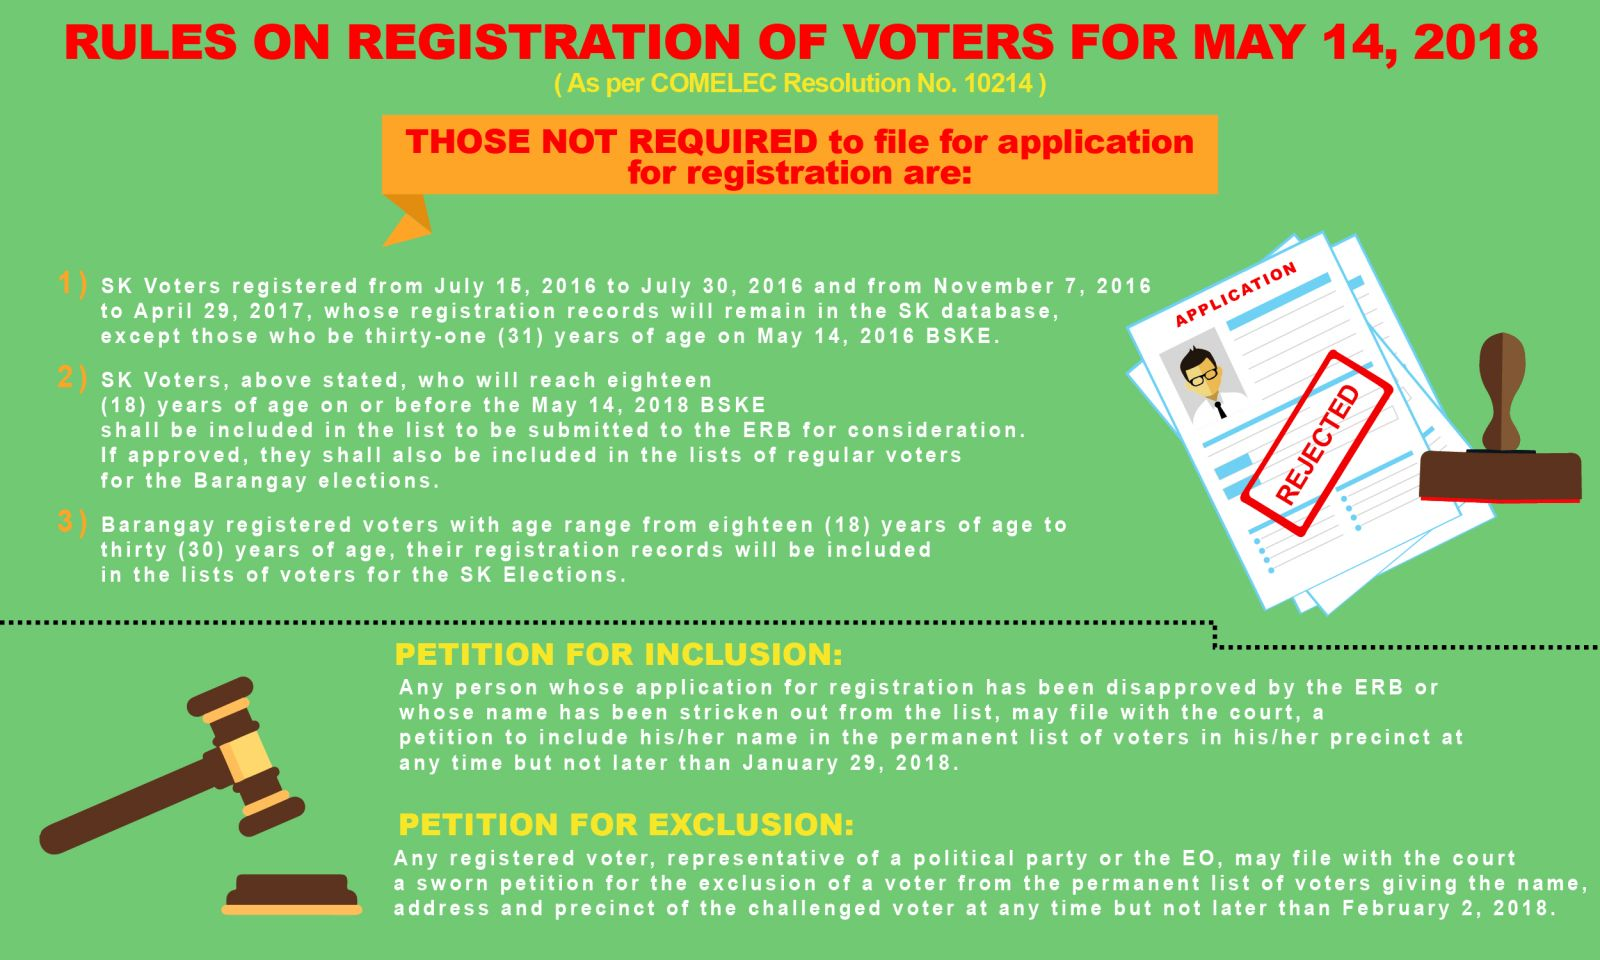 RULES ON REGISTRATION OF VOTERS FOR MAY 14, 2018 | City